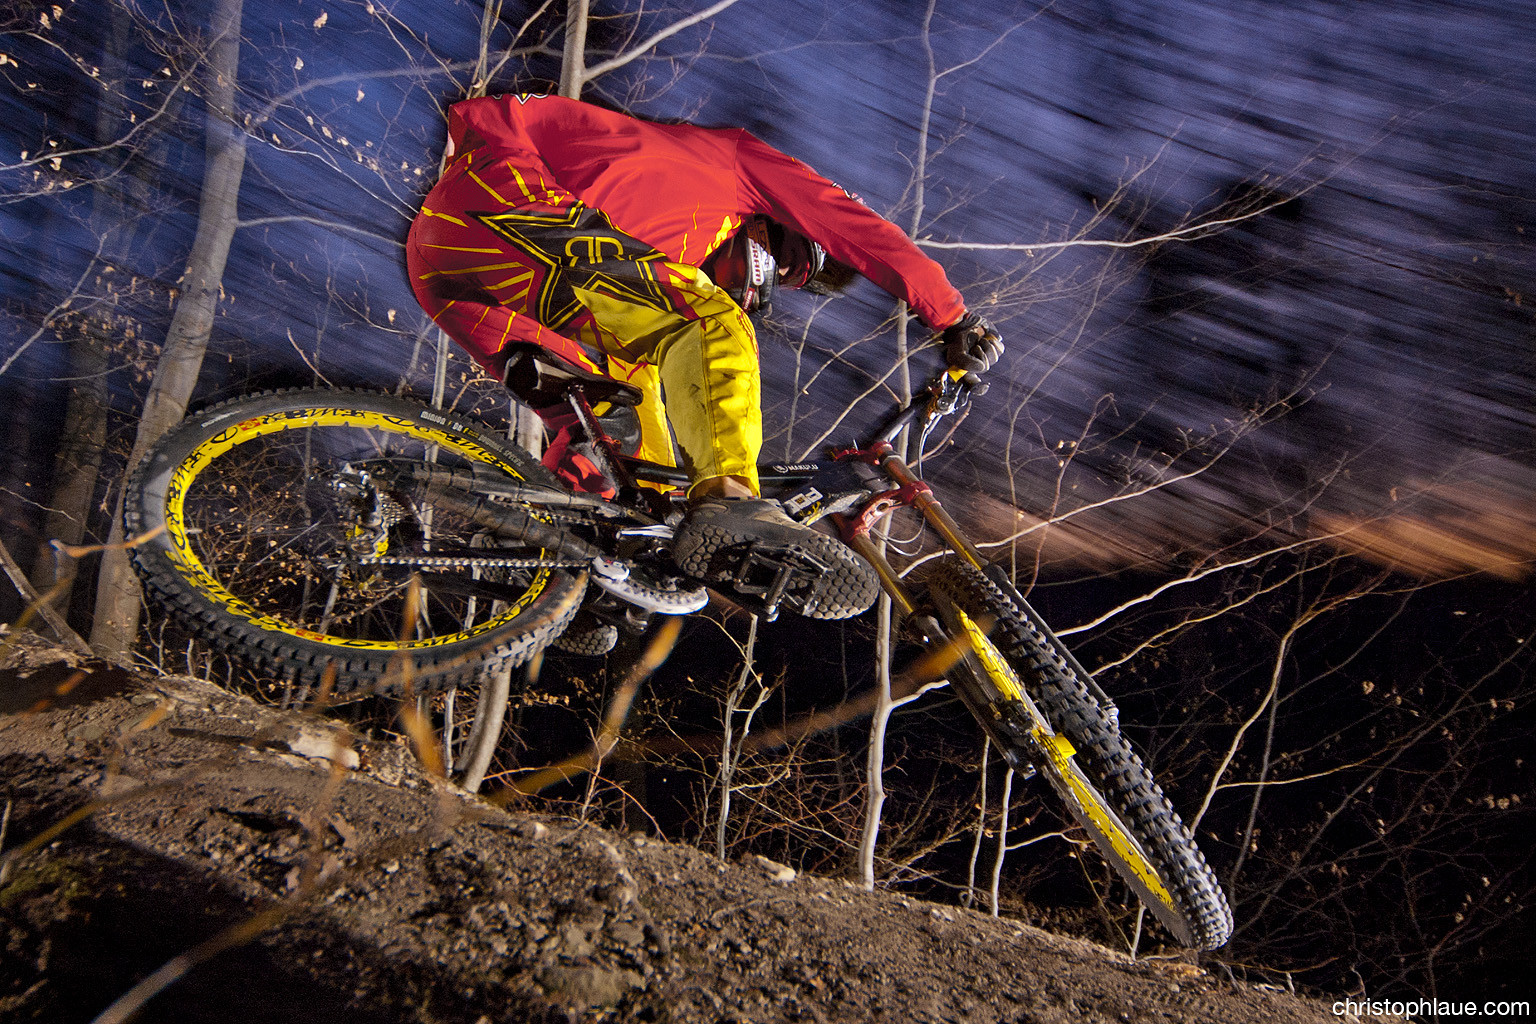 Jens Steinsberger - Christoph Laue - Mountain Biking Pictures - Vital MTB